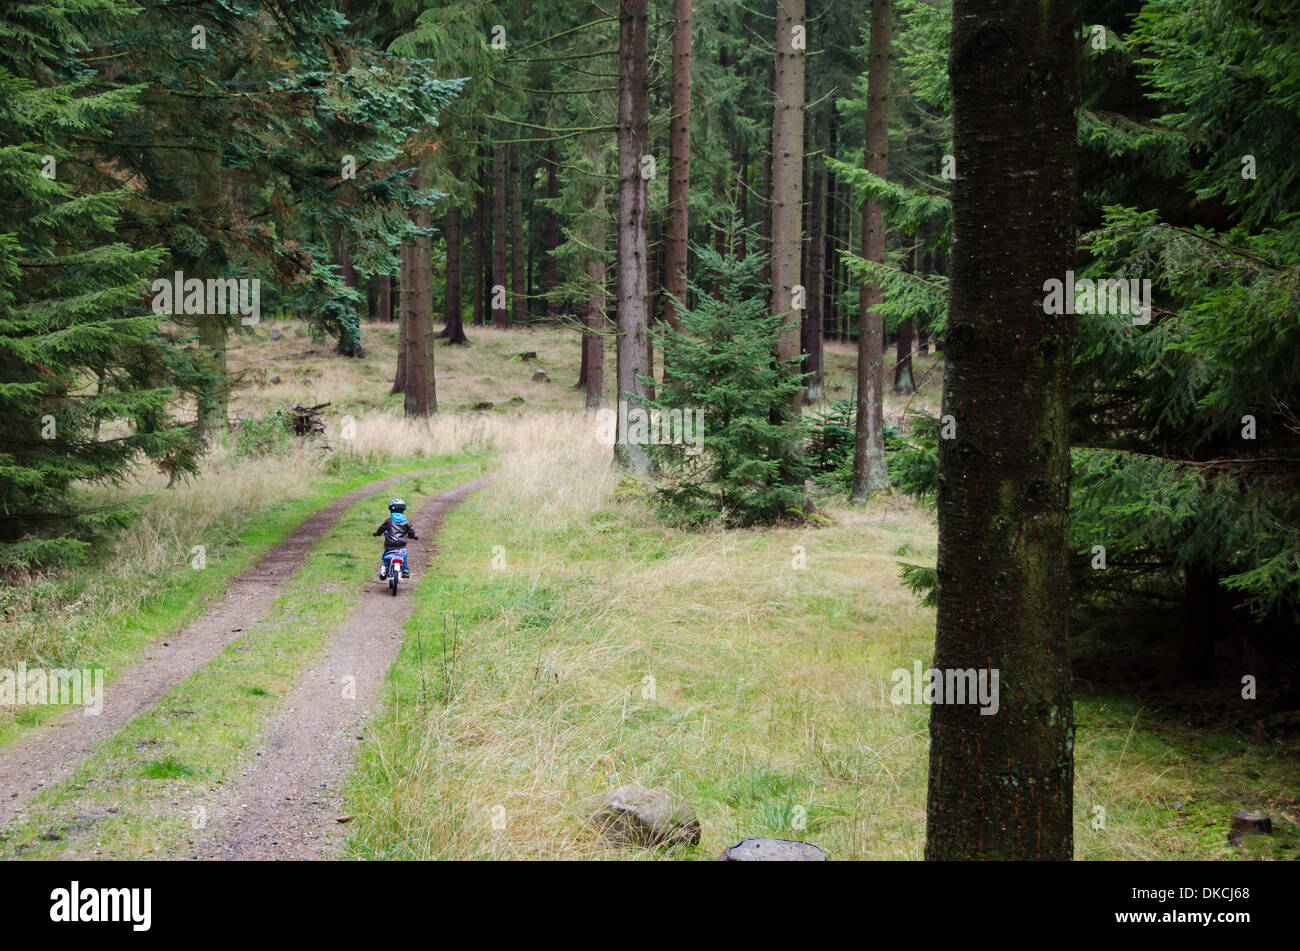 Kid cycling in the forest on a rainy day seen from behind - Stock Image